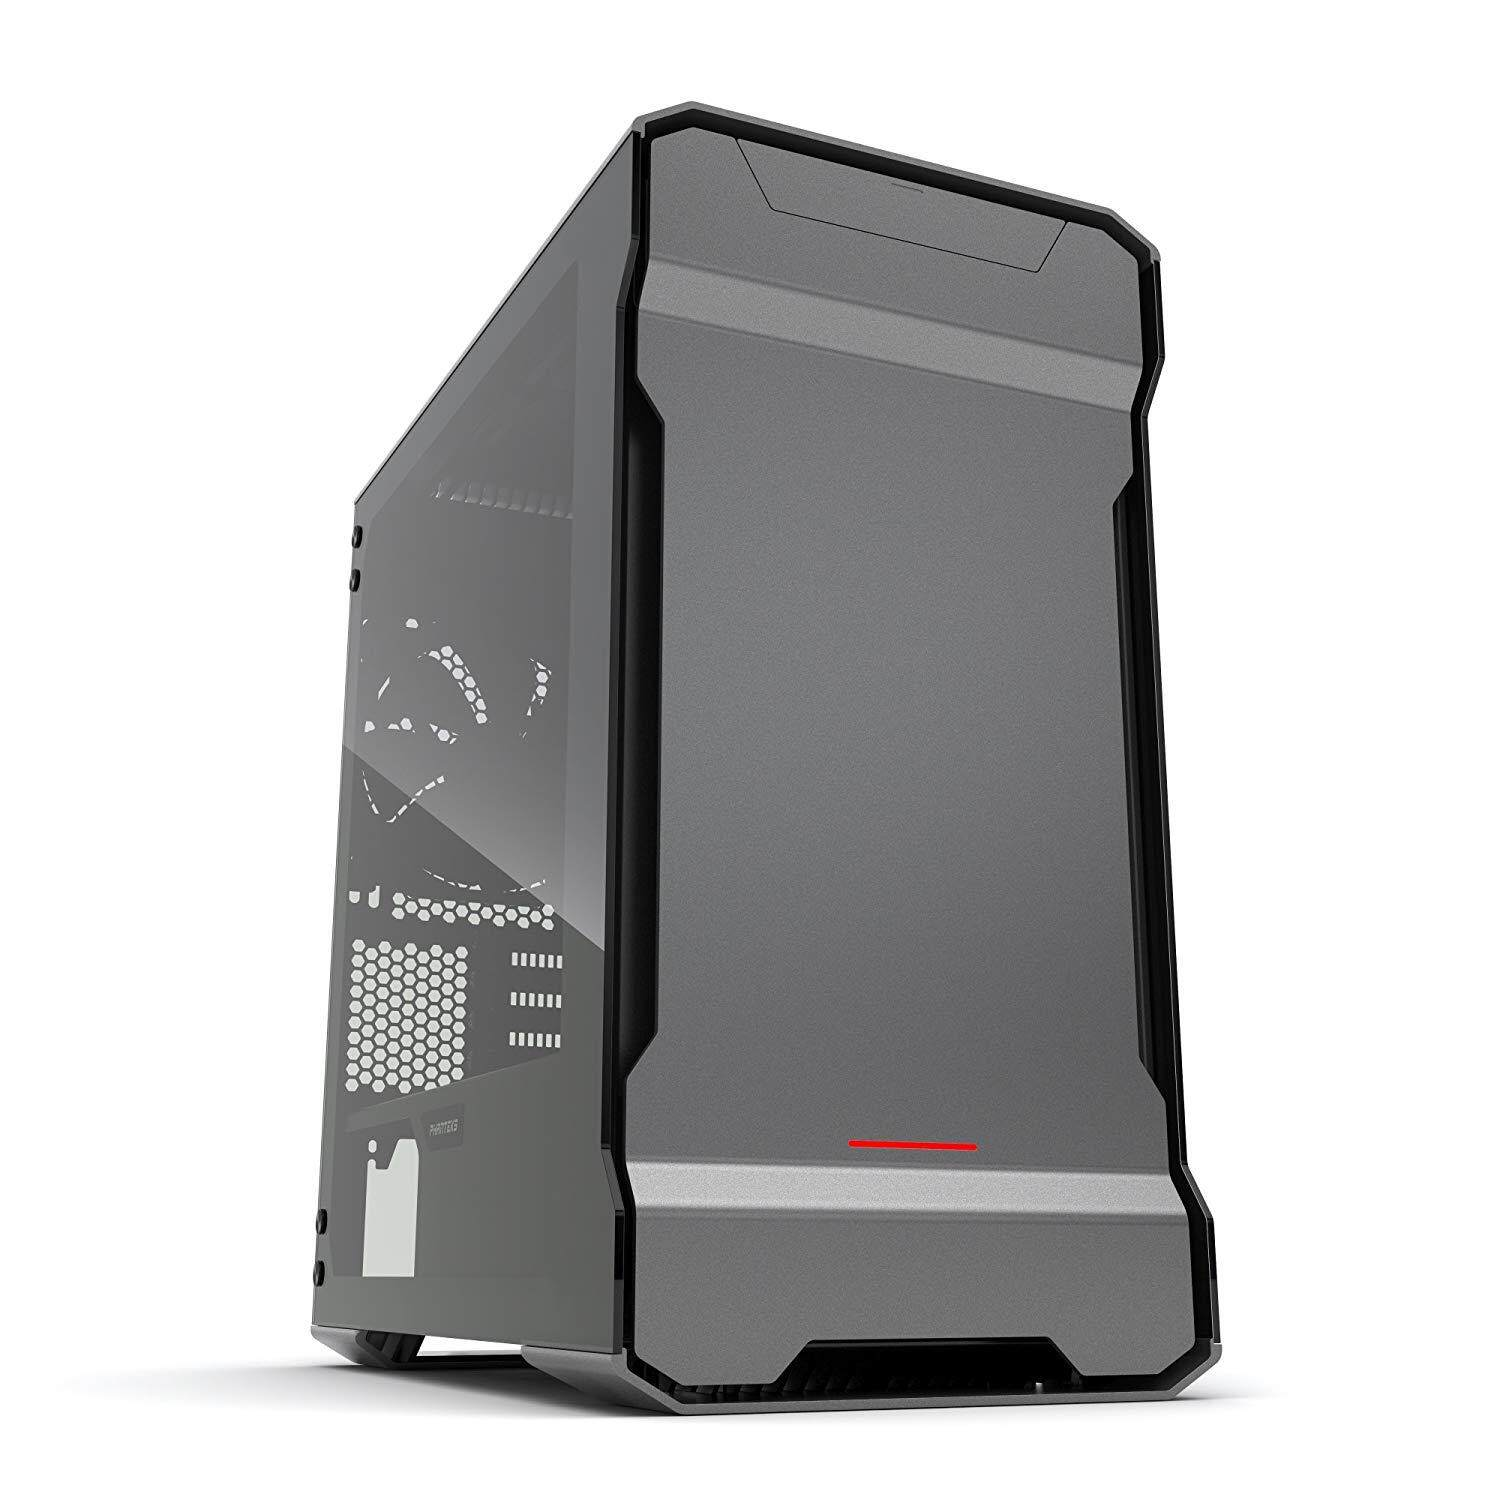 Phanteks Enthoo Evolv Matx Tempered Glass Anthracite Gray (ph-Es314etg_ag) By Tora.